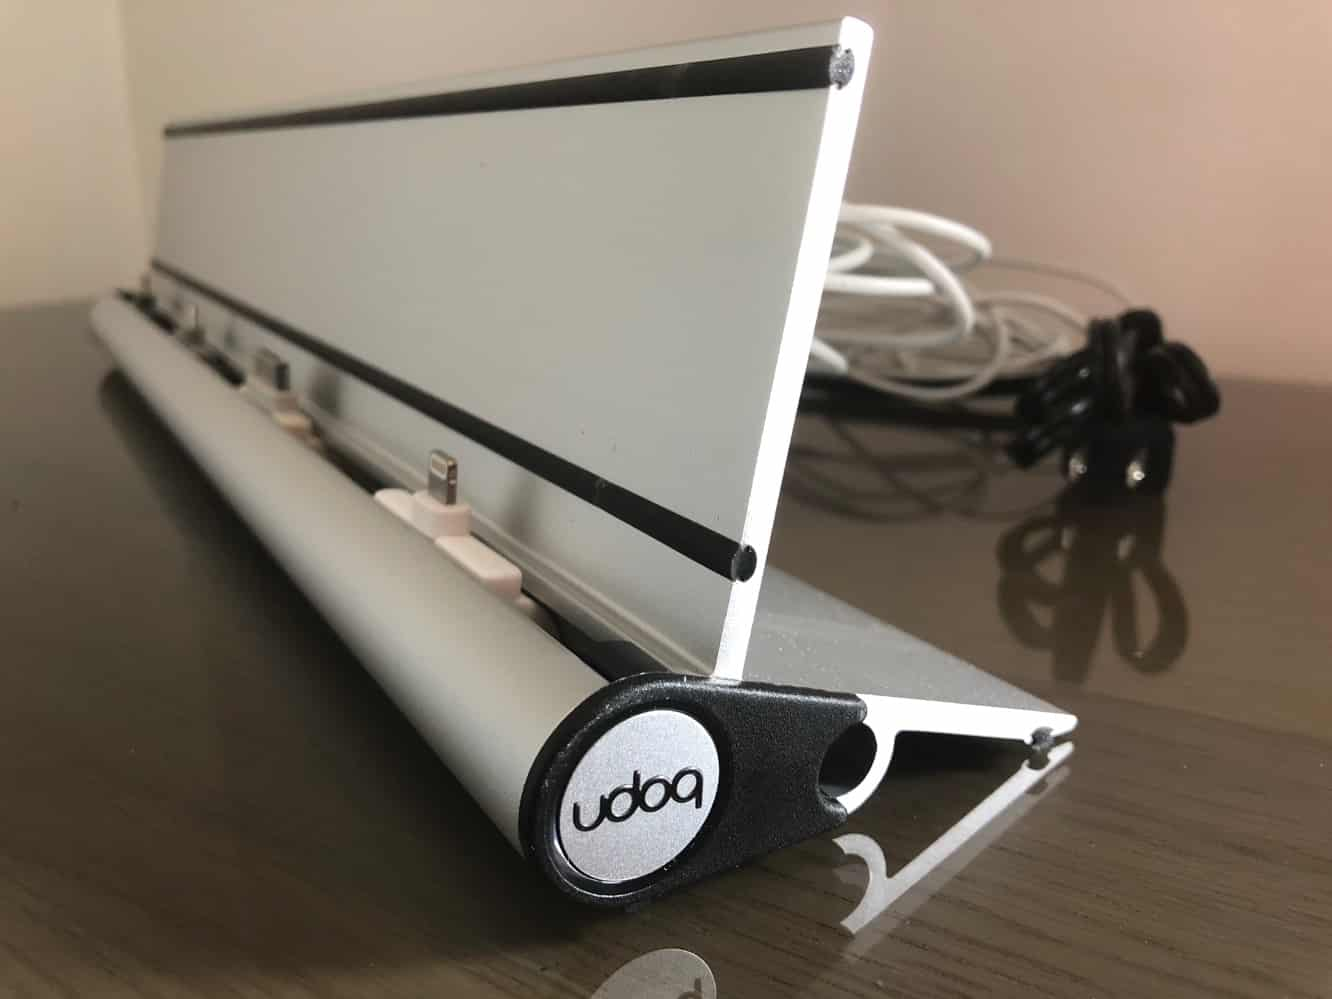 Review: Udoq Docking System